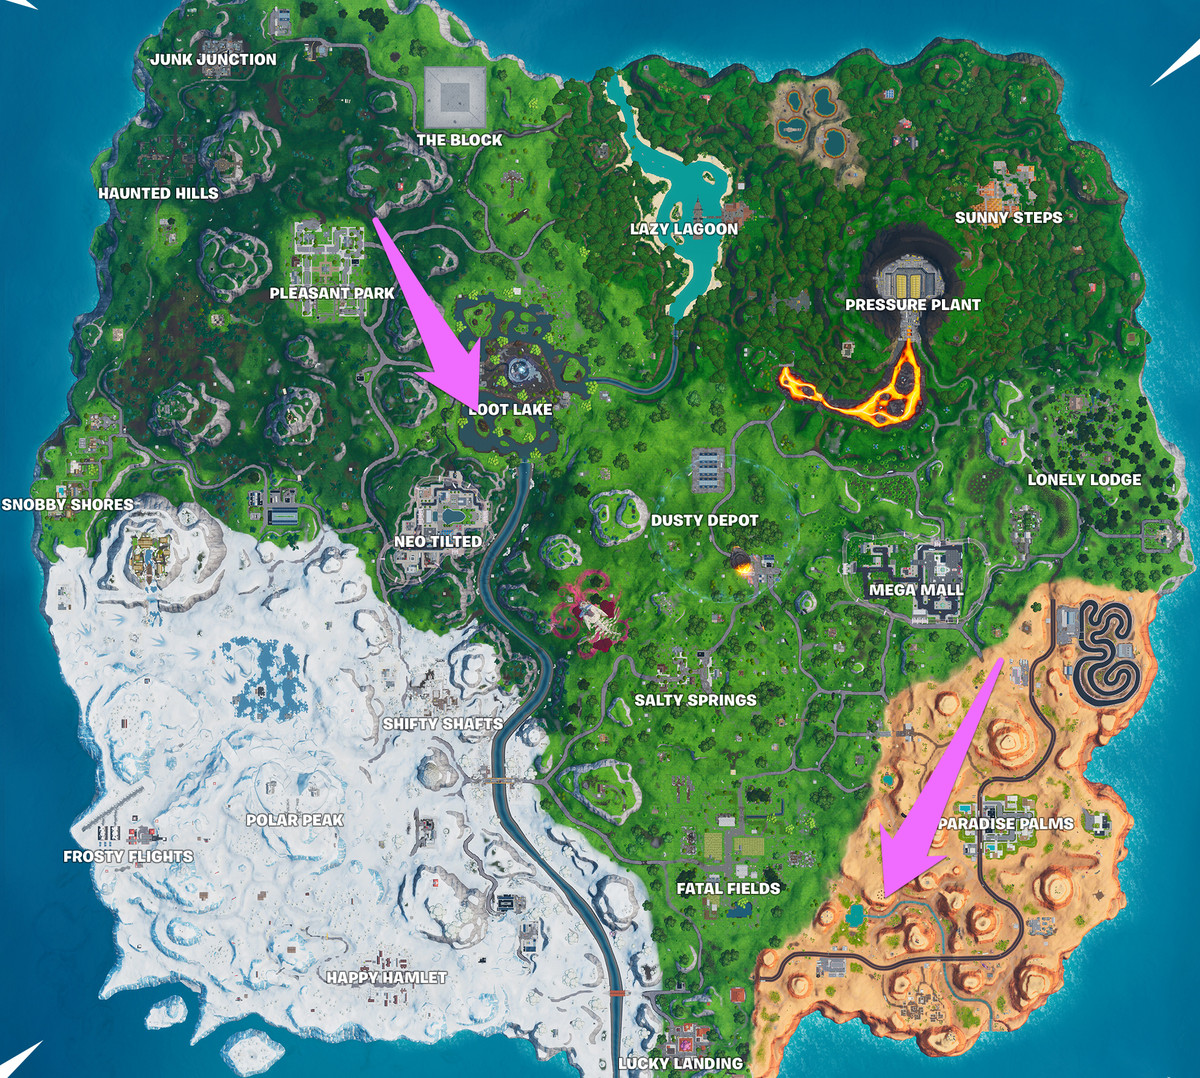 The Fortnite map with arrows pointing to an area inside Loot Lake just south of its center, and an area southwest of Salty Springs